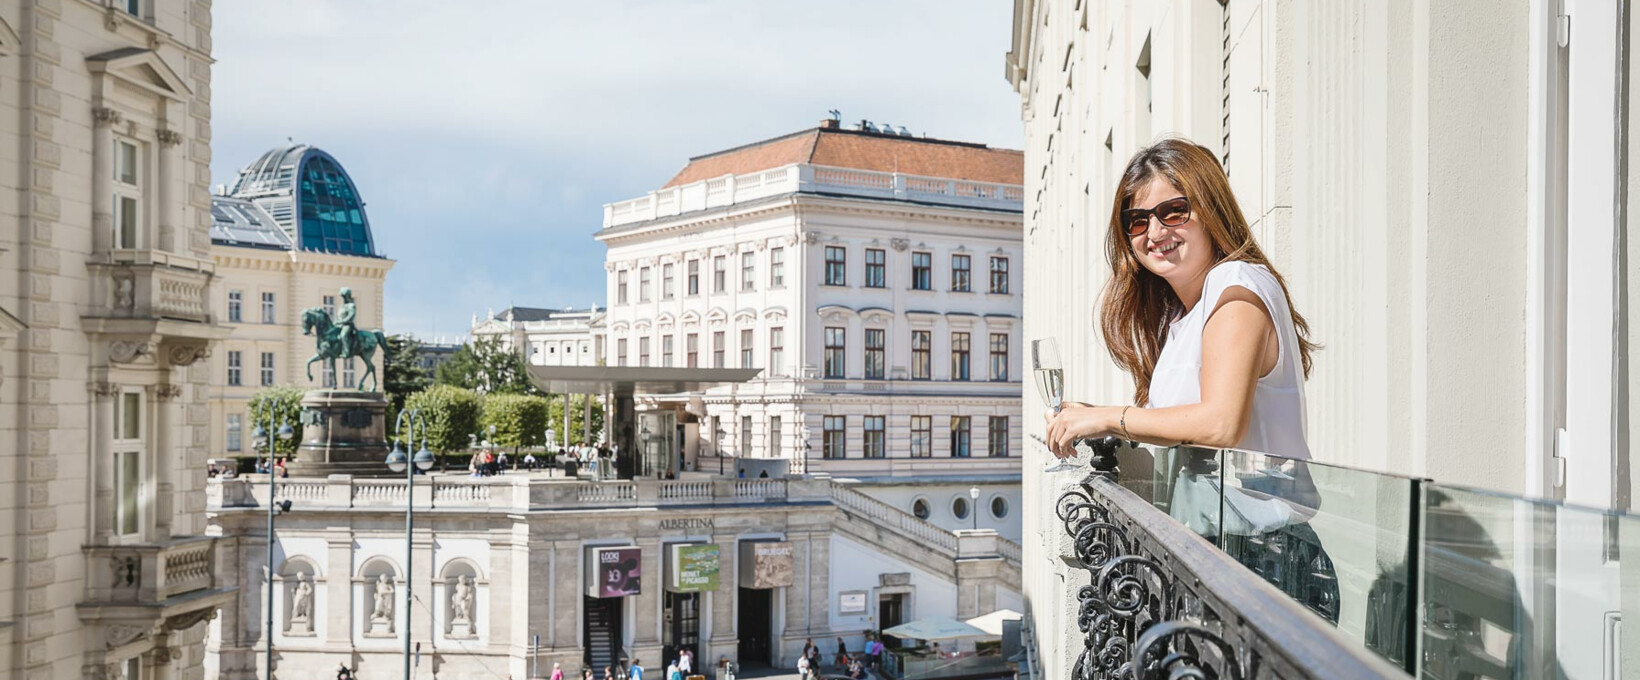 Balcony with view | Hotel Astoria  in Vienna